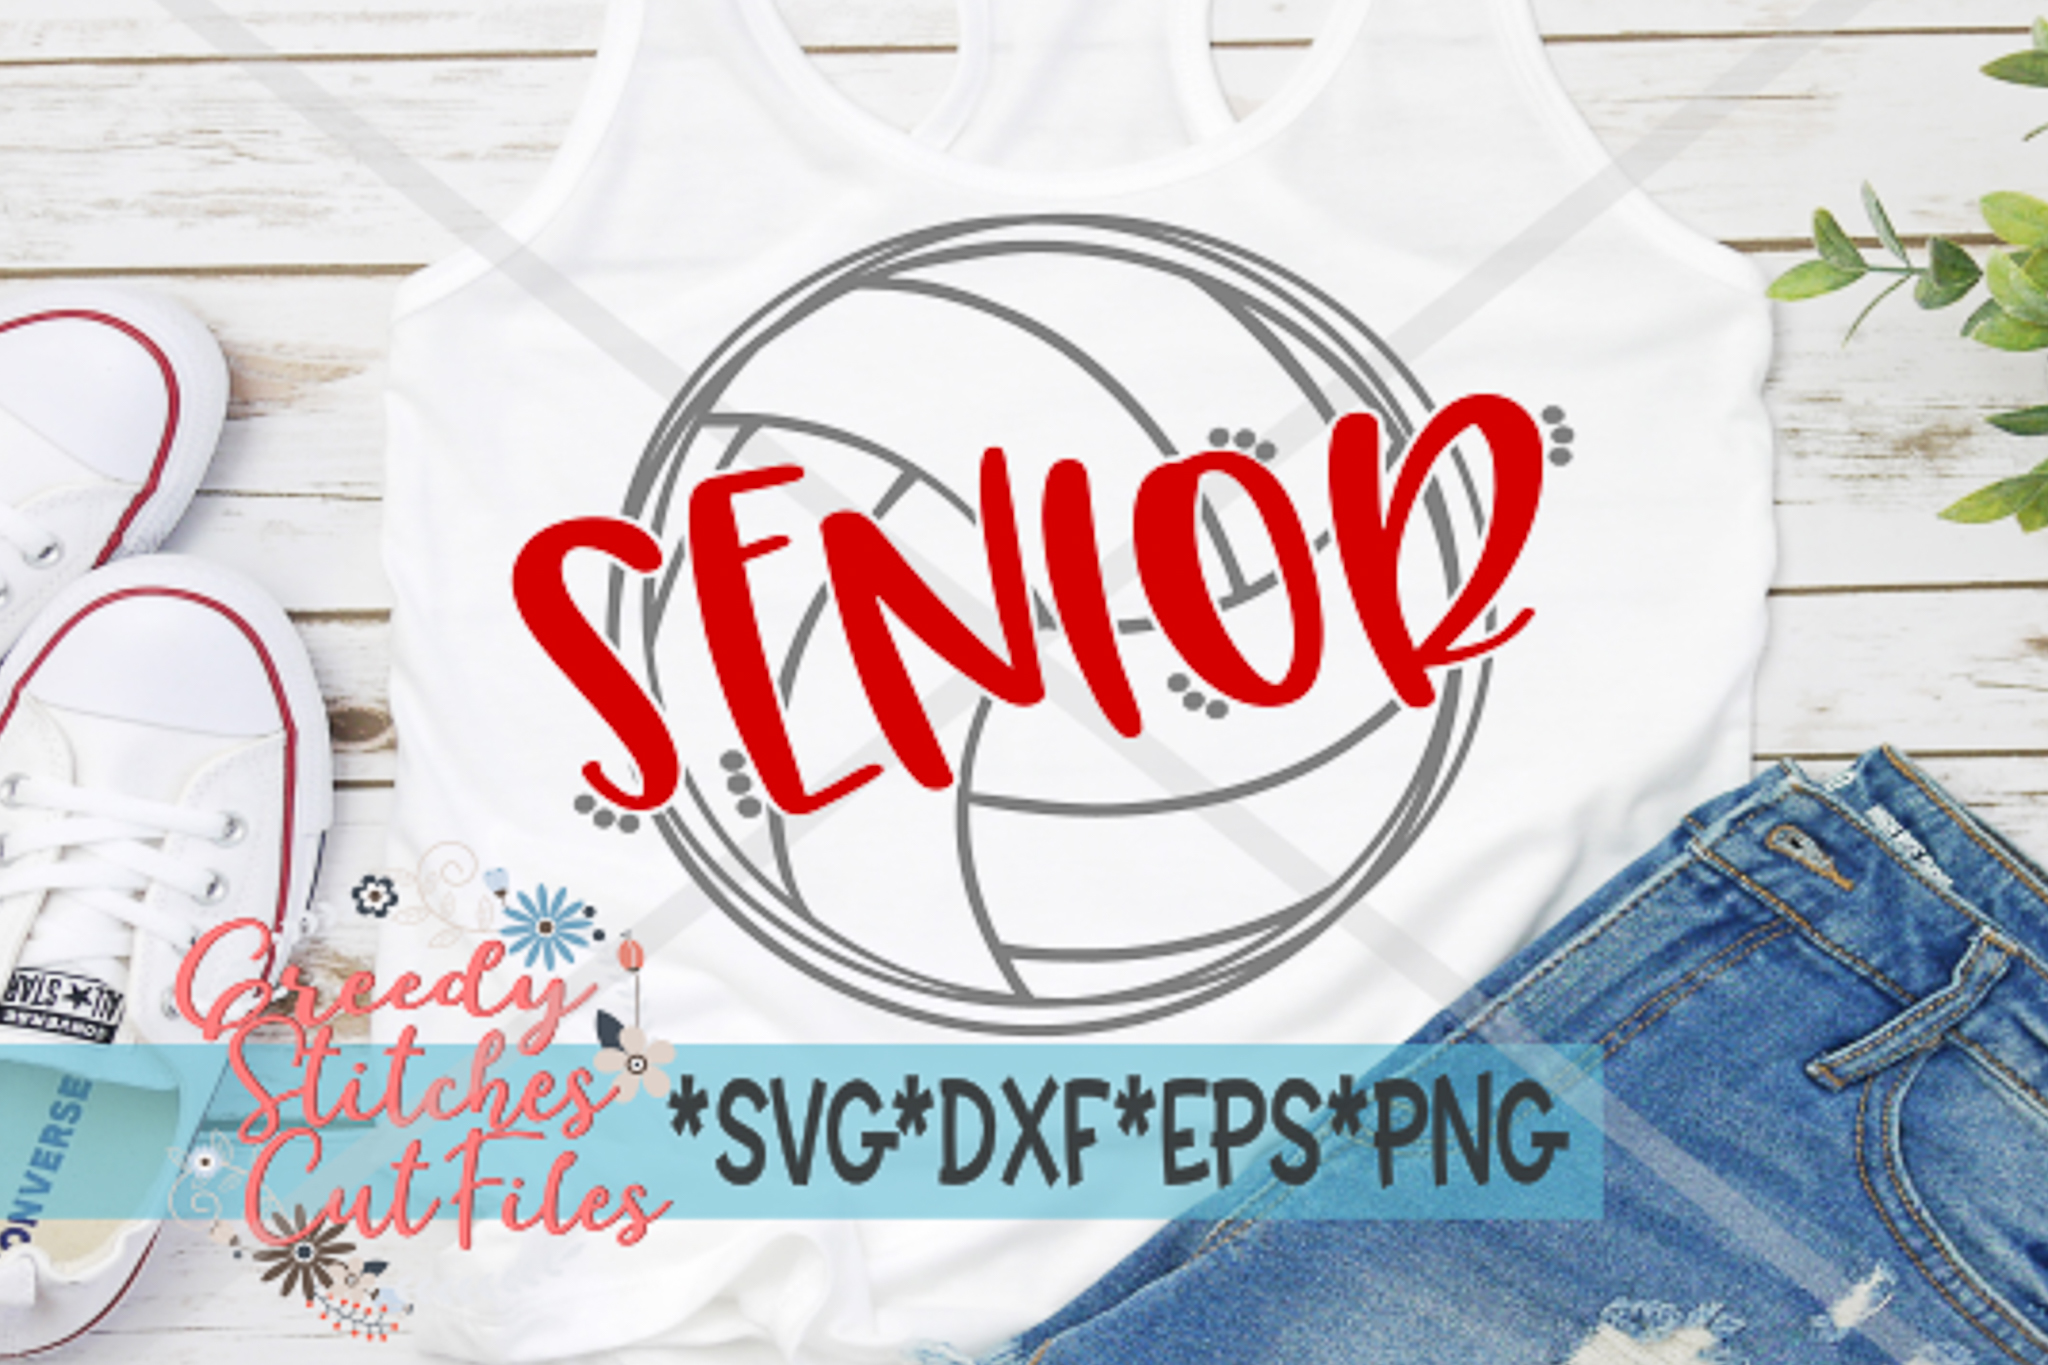 Senior Volleyball SVG, DXF, EPS, PNG Files example image 1